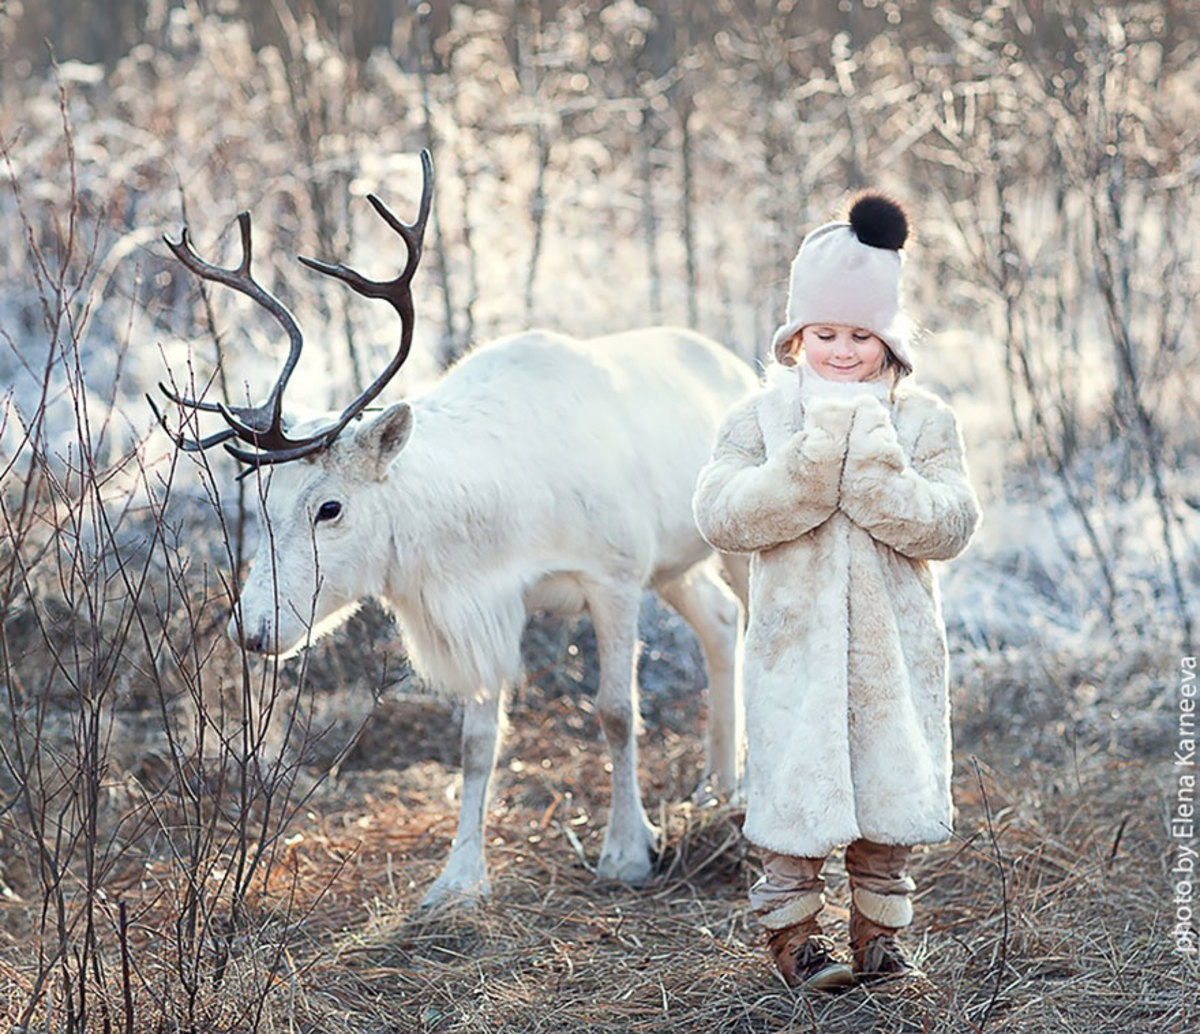 Beautiful portraits of children with animals